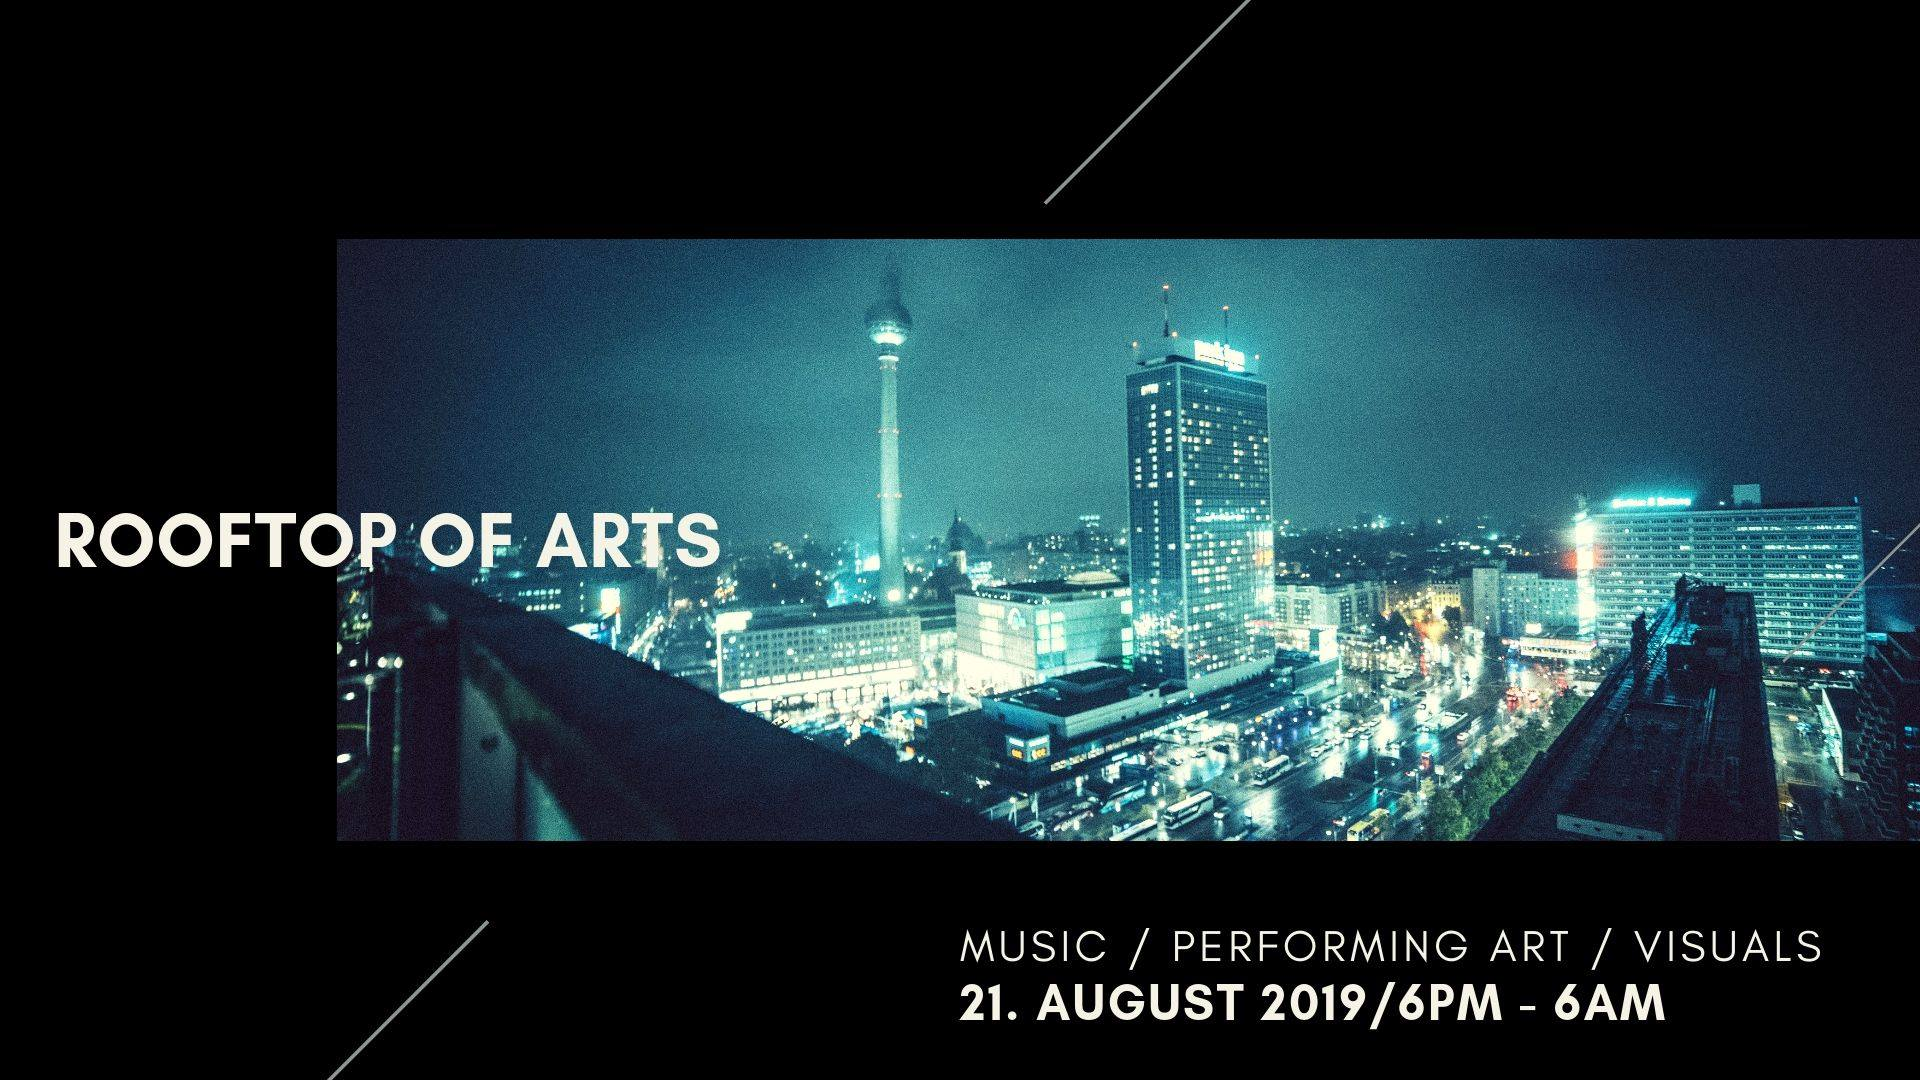 Rooftop of Arts  Far away from reality, at the rooftop  in the middle of the city is the setting for our rooftop of  arts. Cross the bridge with us into a world full of fog and light, far away from space and time. Fly with us through the night and follow the lights of life